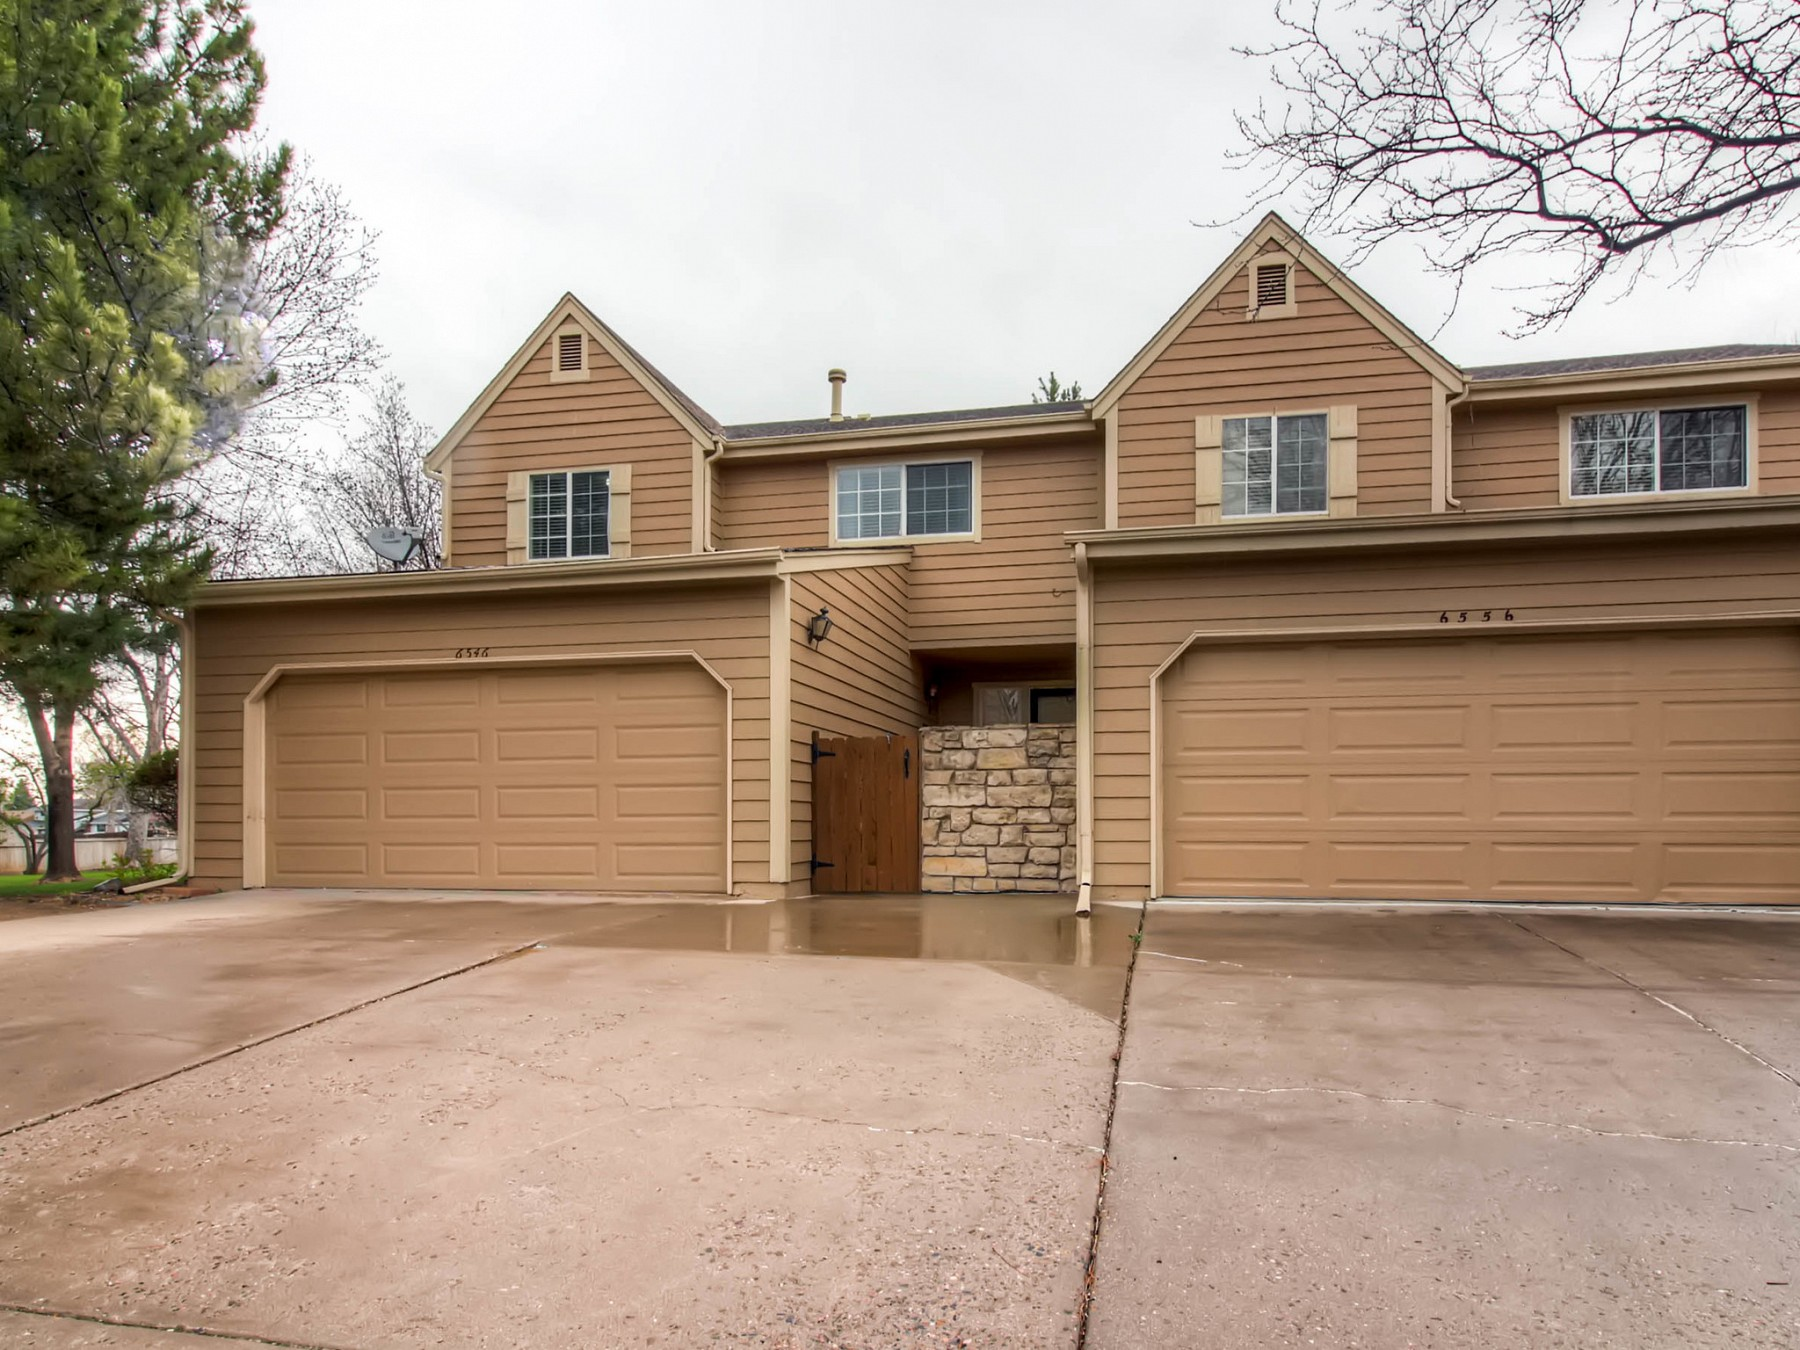 6546 South Yukon Way, Littleton, CO 80123